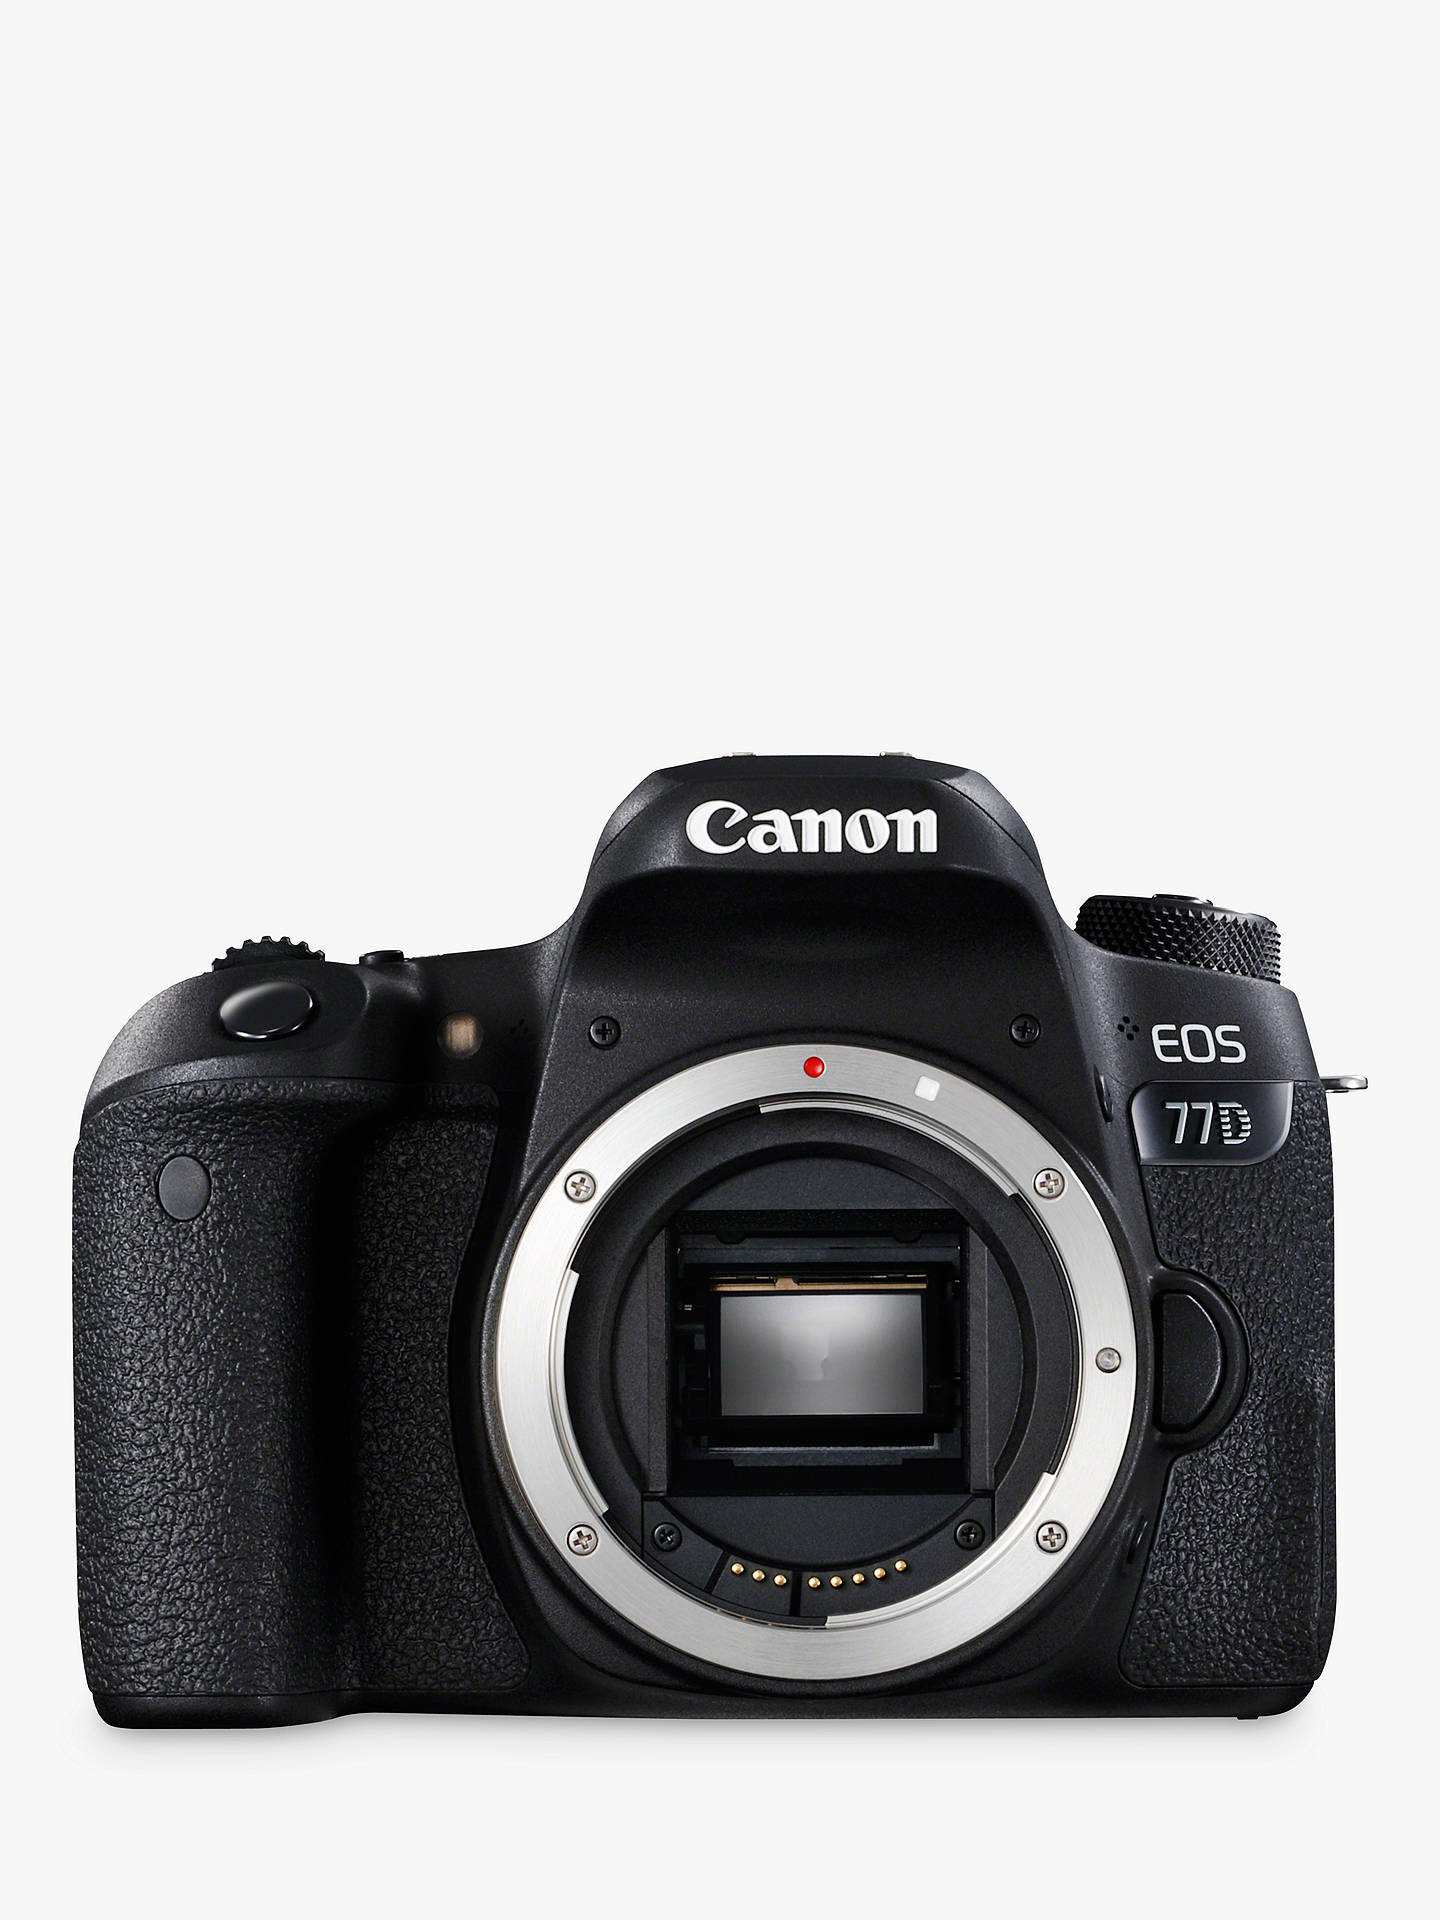 Canon EOS 77D Digital SLR Camera, HD 1080p, 24 2MP, Wi-Fi, Bluetooth, NFC,  Optical Viewfinder, 3